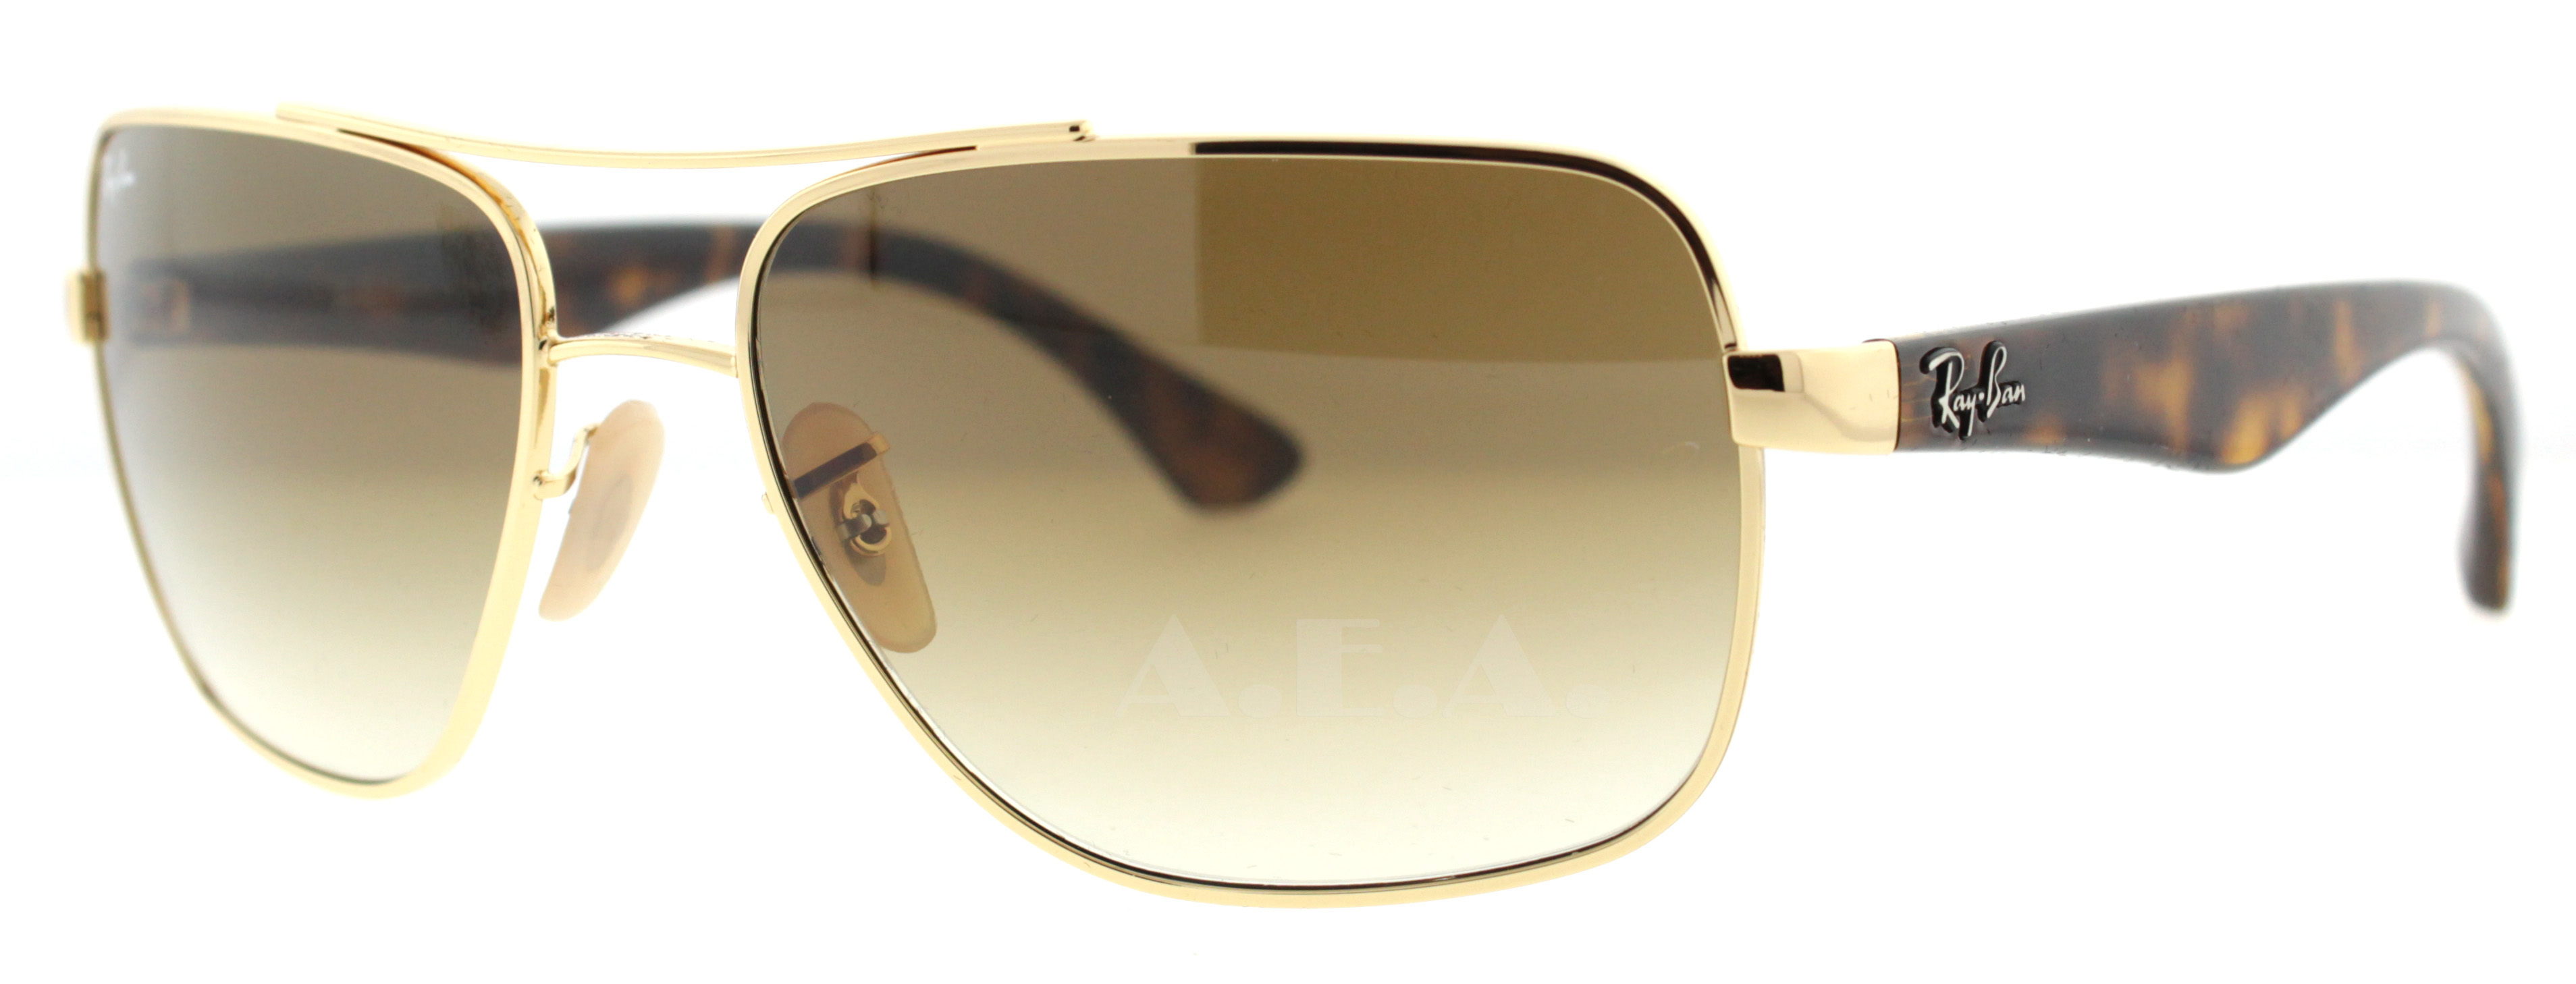 ray ban sunglasses styles  aviator sunglasses